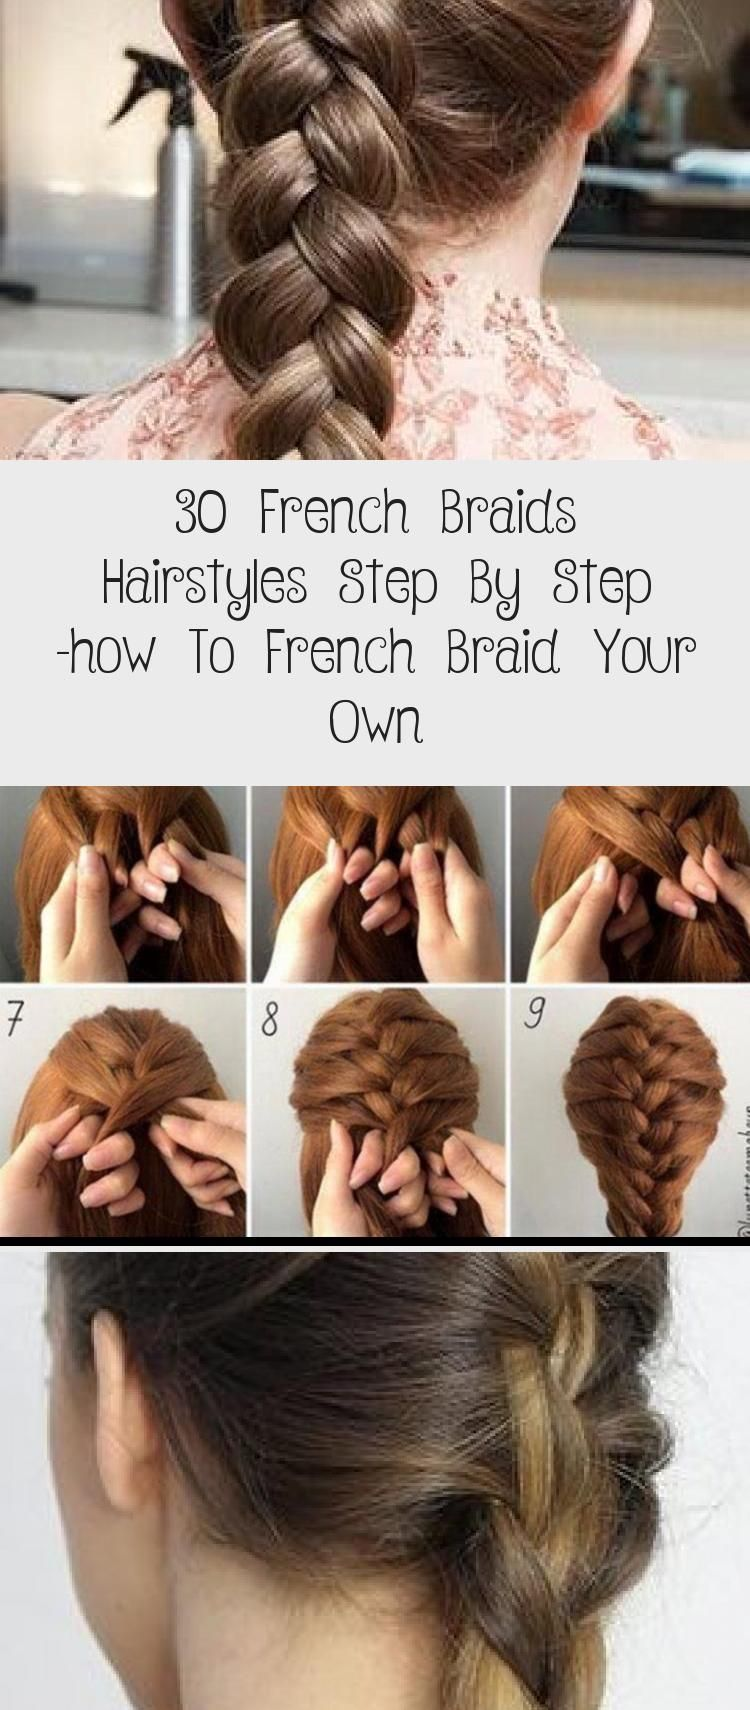 French Braid Hair Style Step By Step